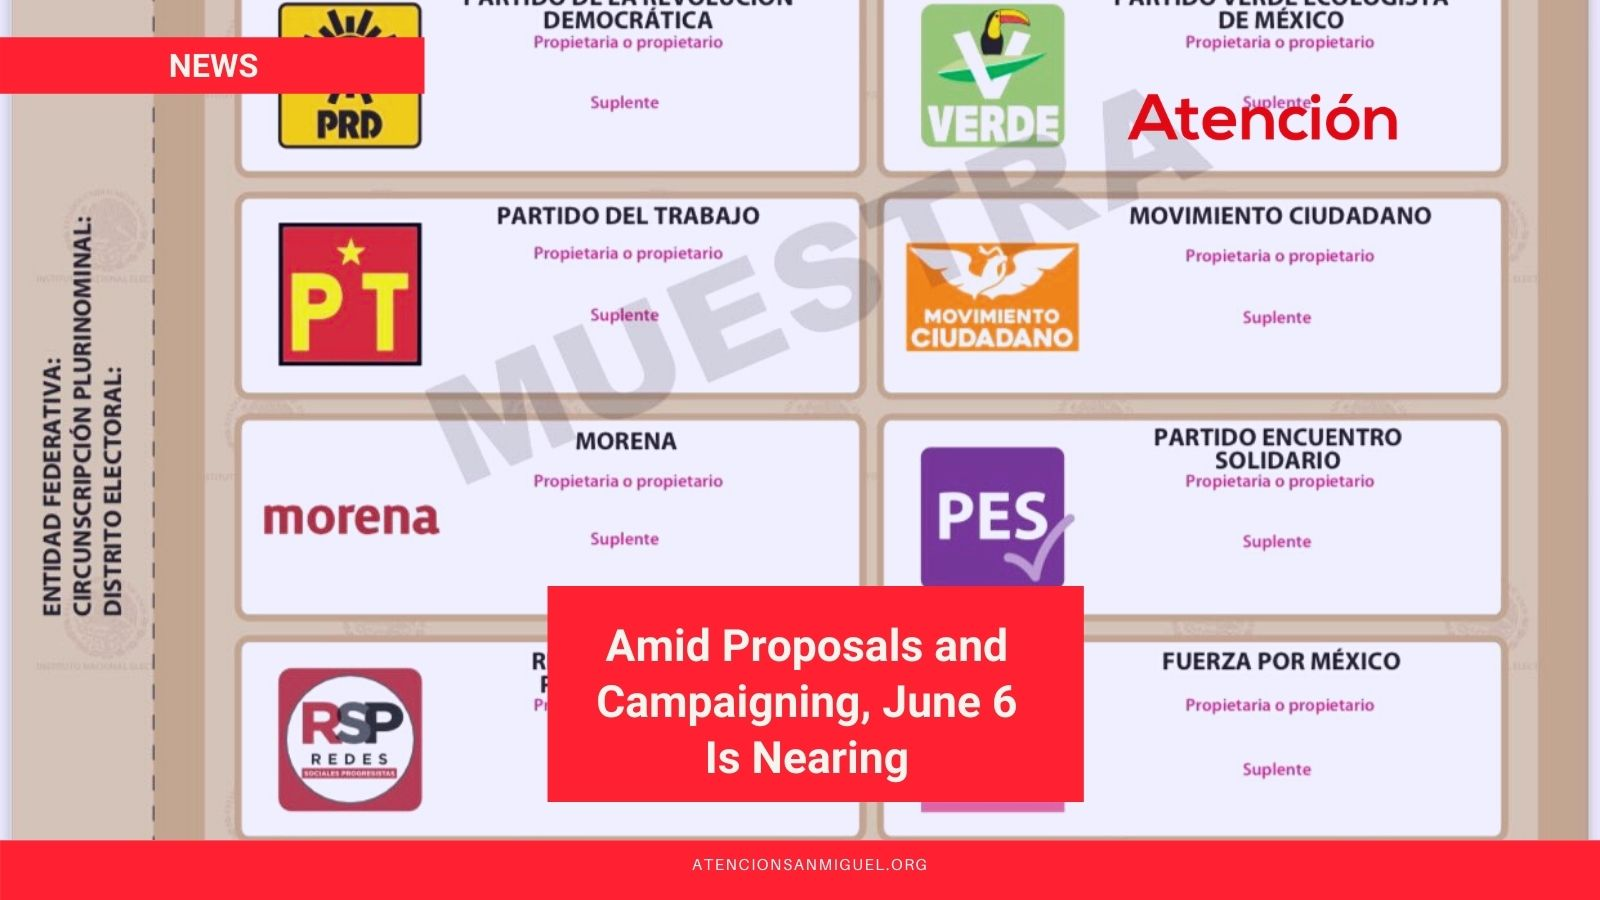 Amid-Proposals-and-Campaigning-June-6-Is-Nearing.jpg